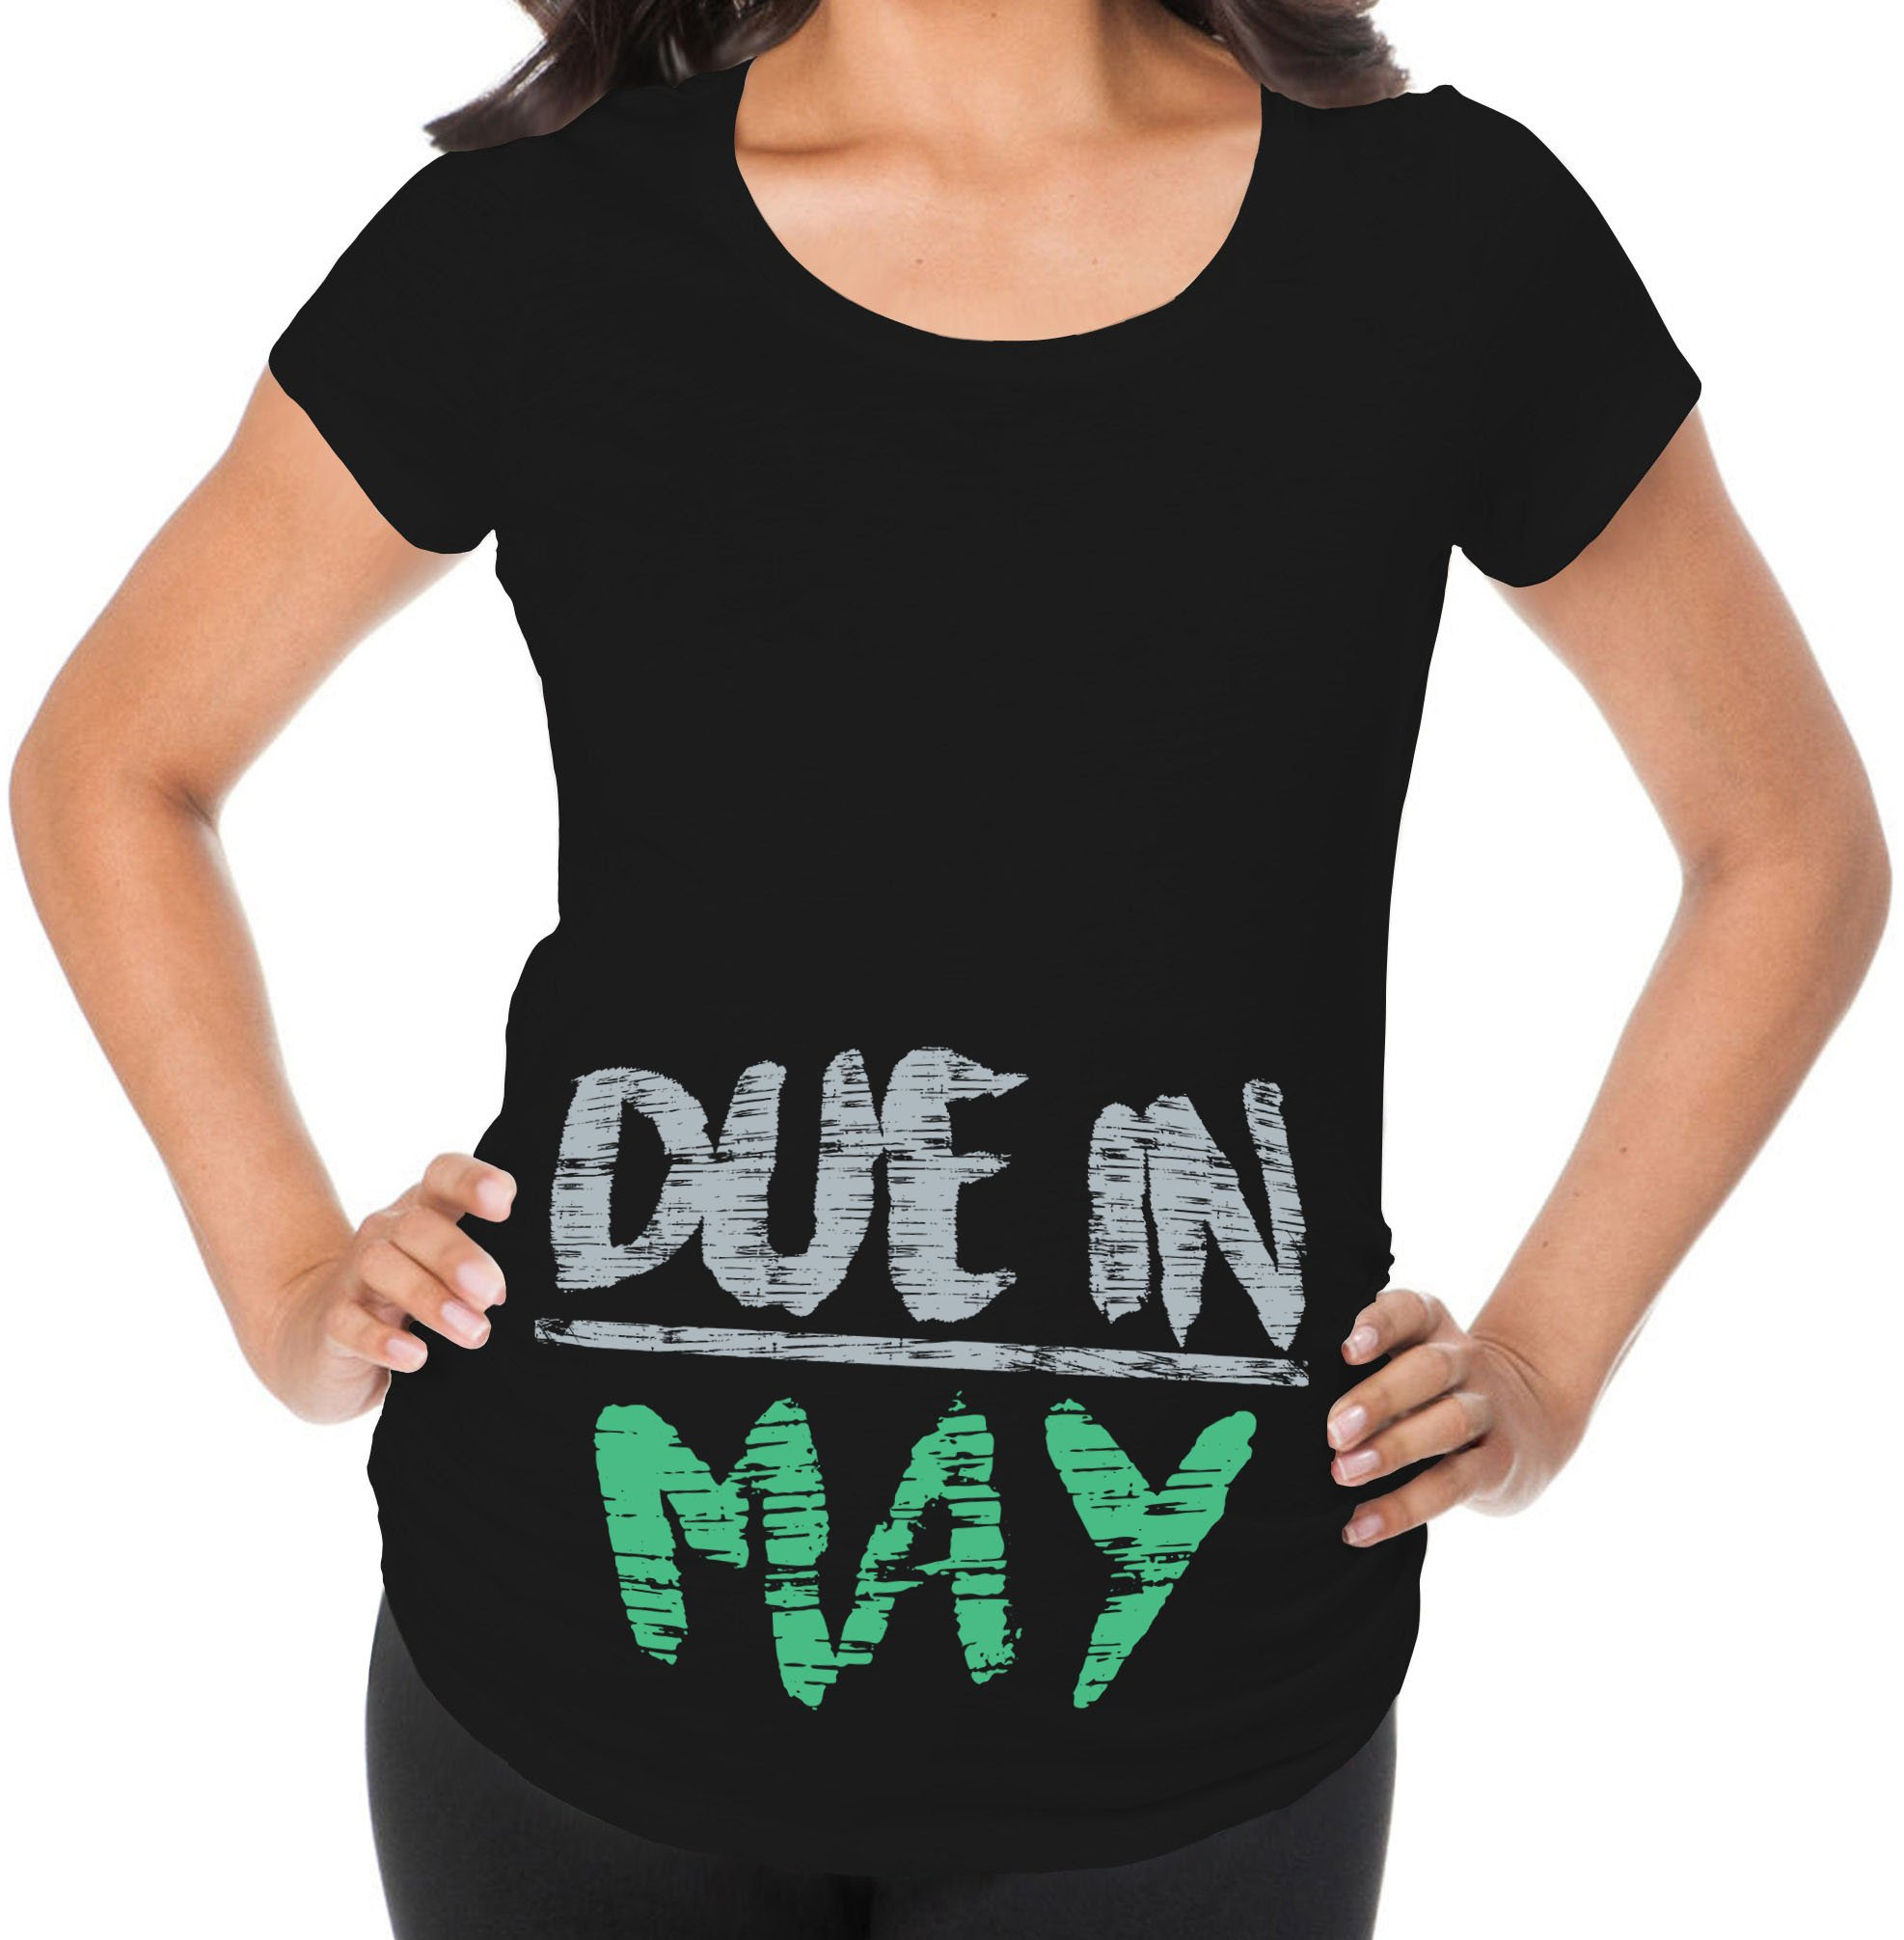 Awkward Styles Due in May Pregnancy Announcement Maternity T Shirt Mom to Be Black 2XL